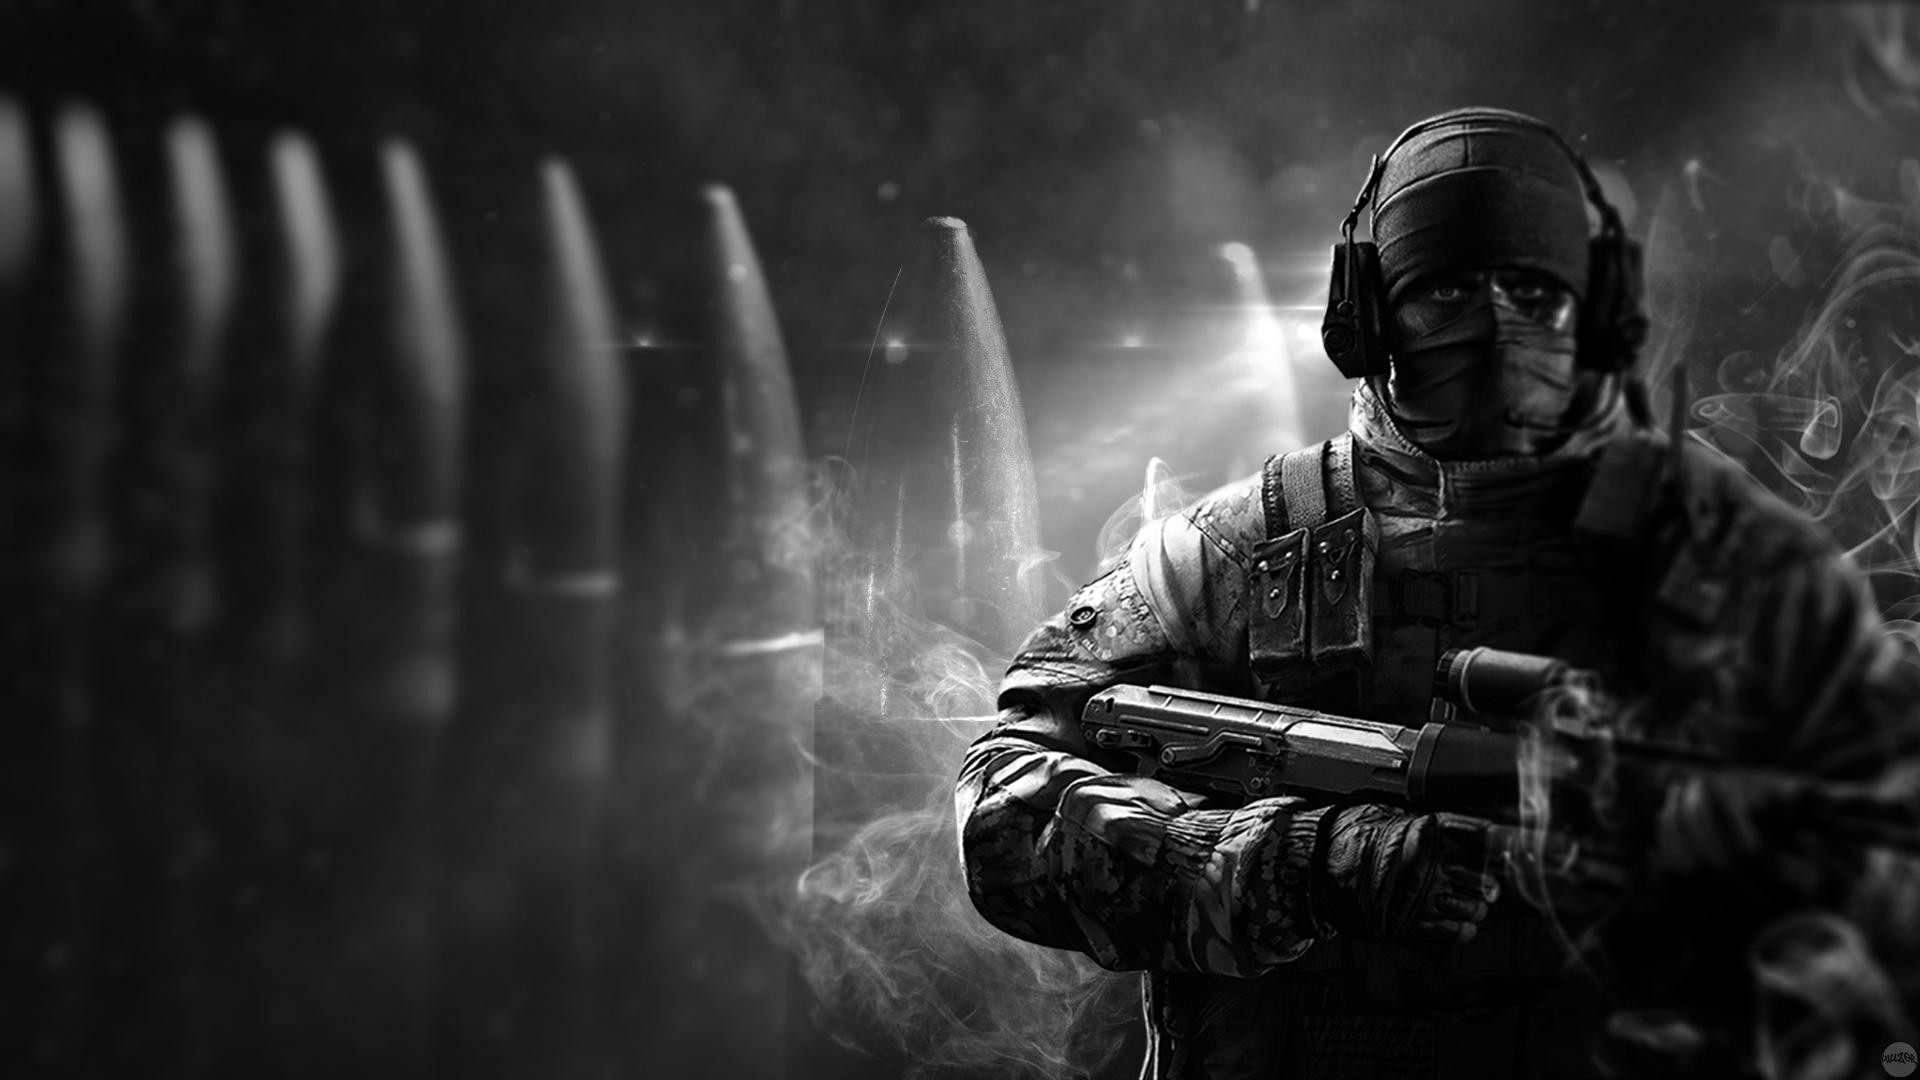 Rainbow Six Siege wallpaper ·① Download free beautiful ...